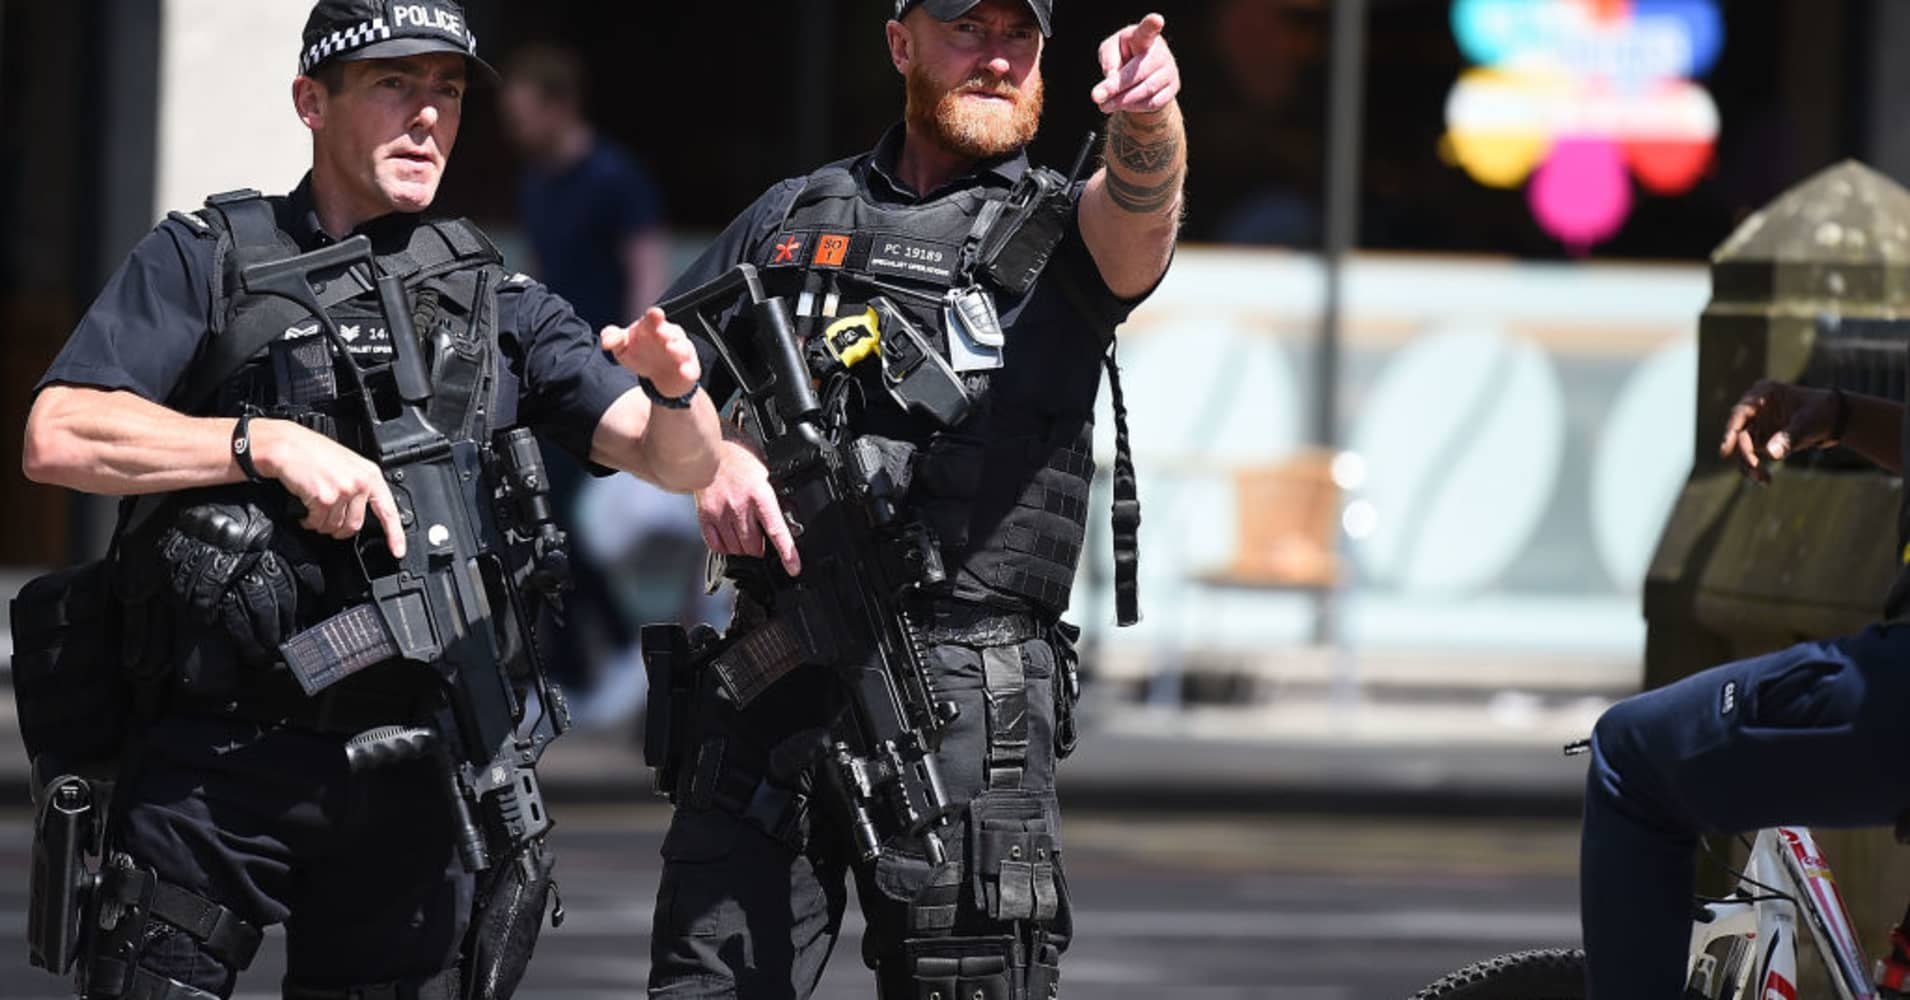 Reaction: 22 people killed and 59 injured in Manchester terror attack